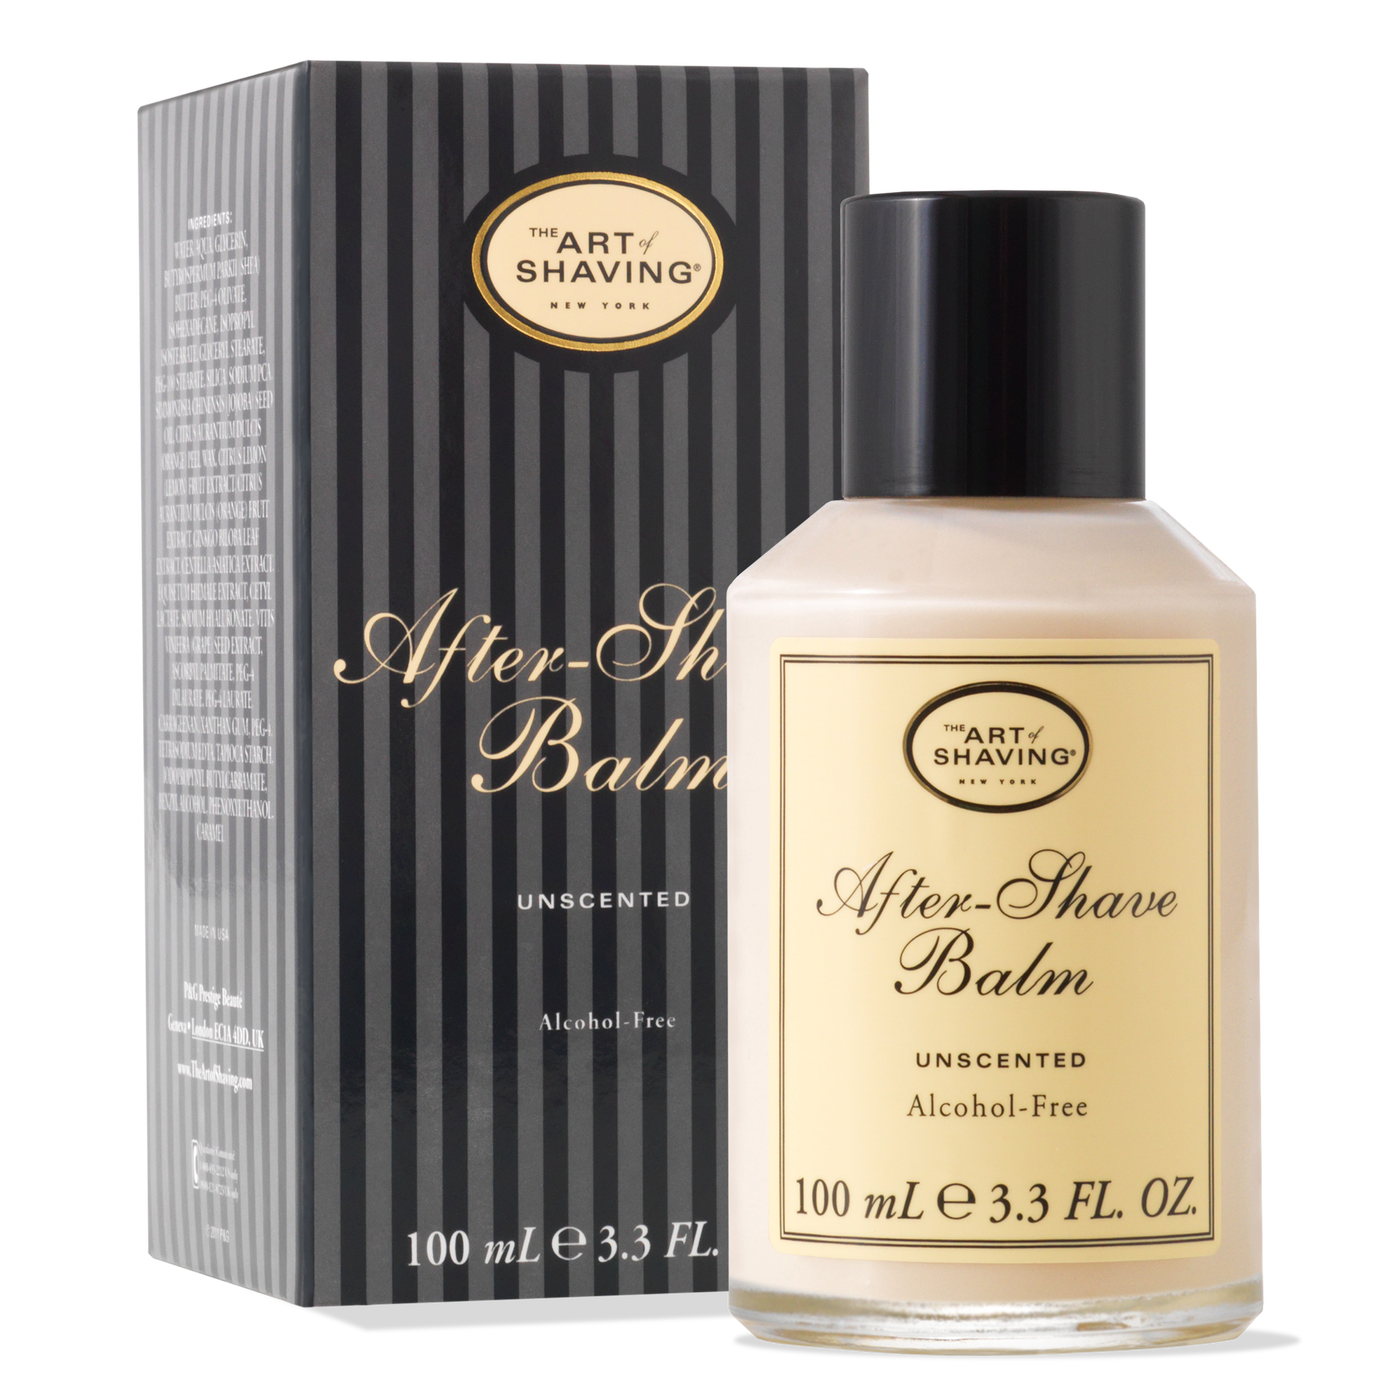 The Art Of Shaving: After Shave Balm - Unscented 3.3 oz.